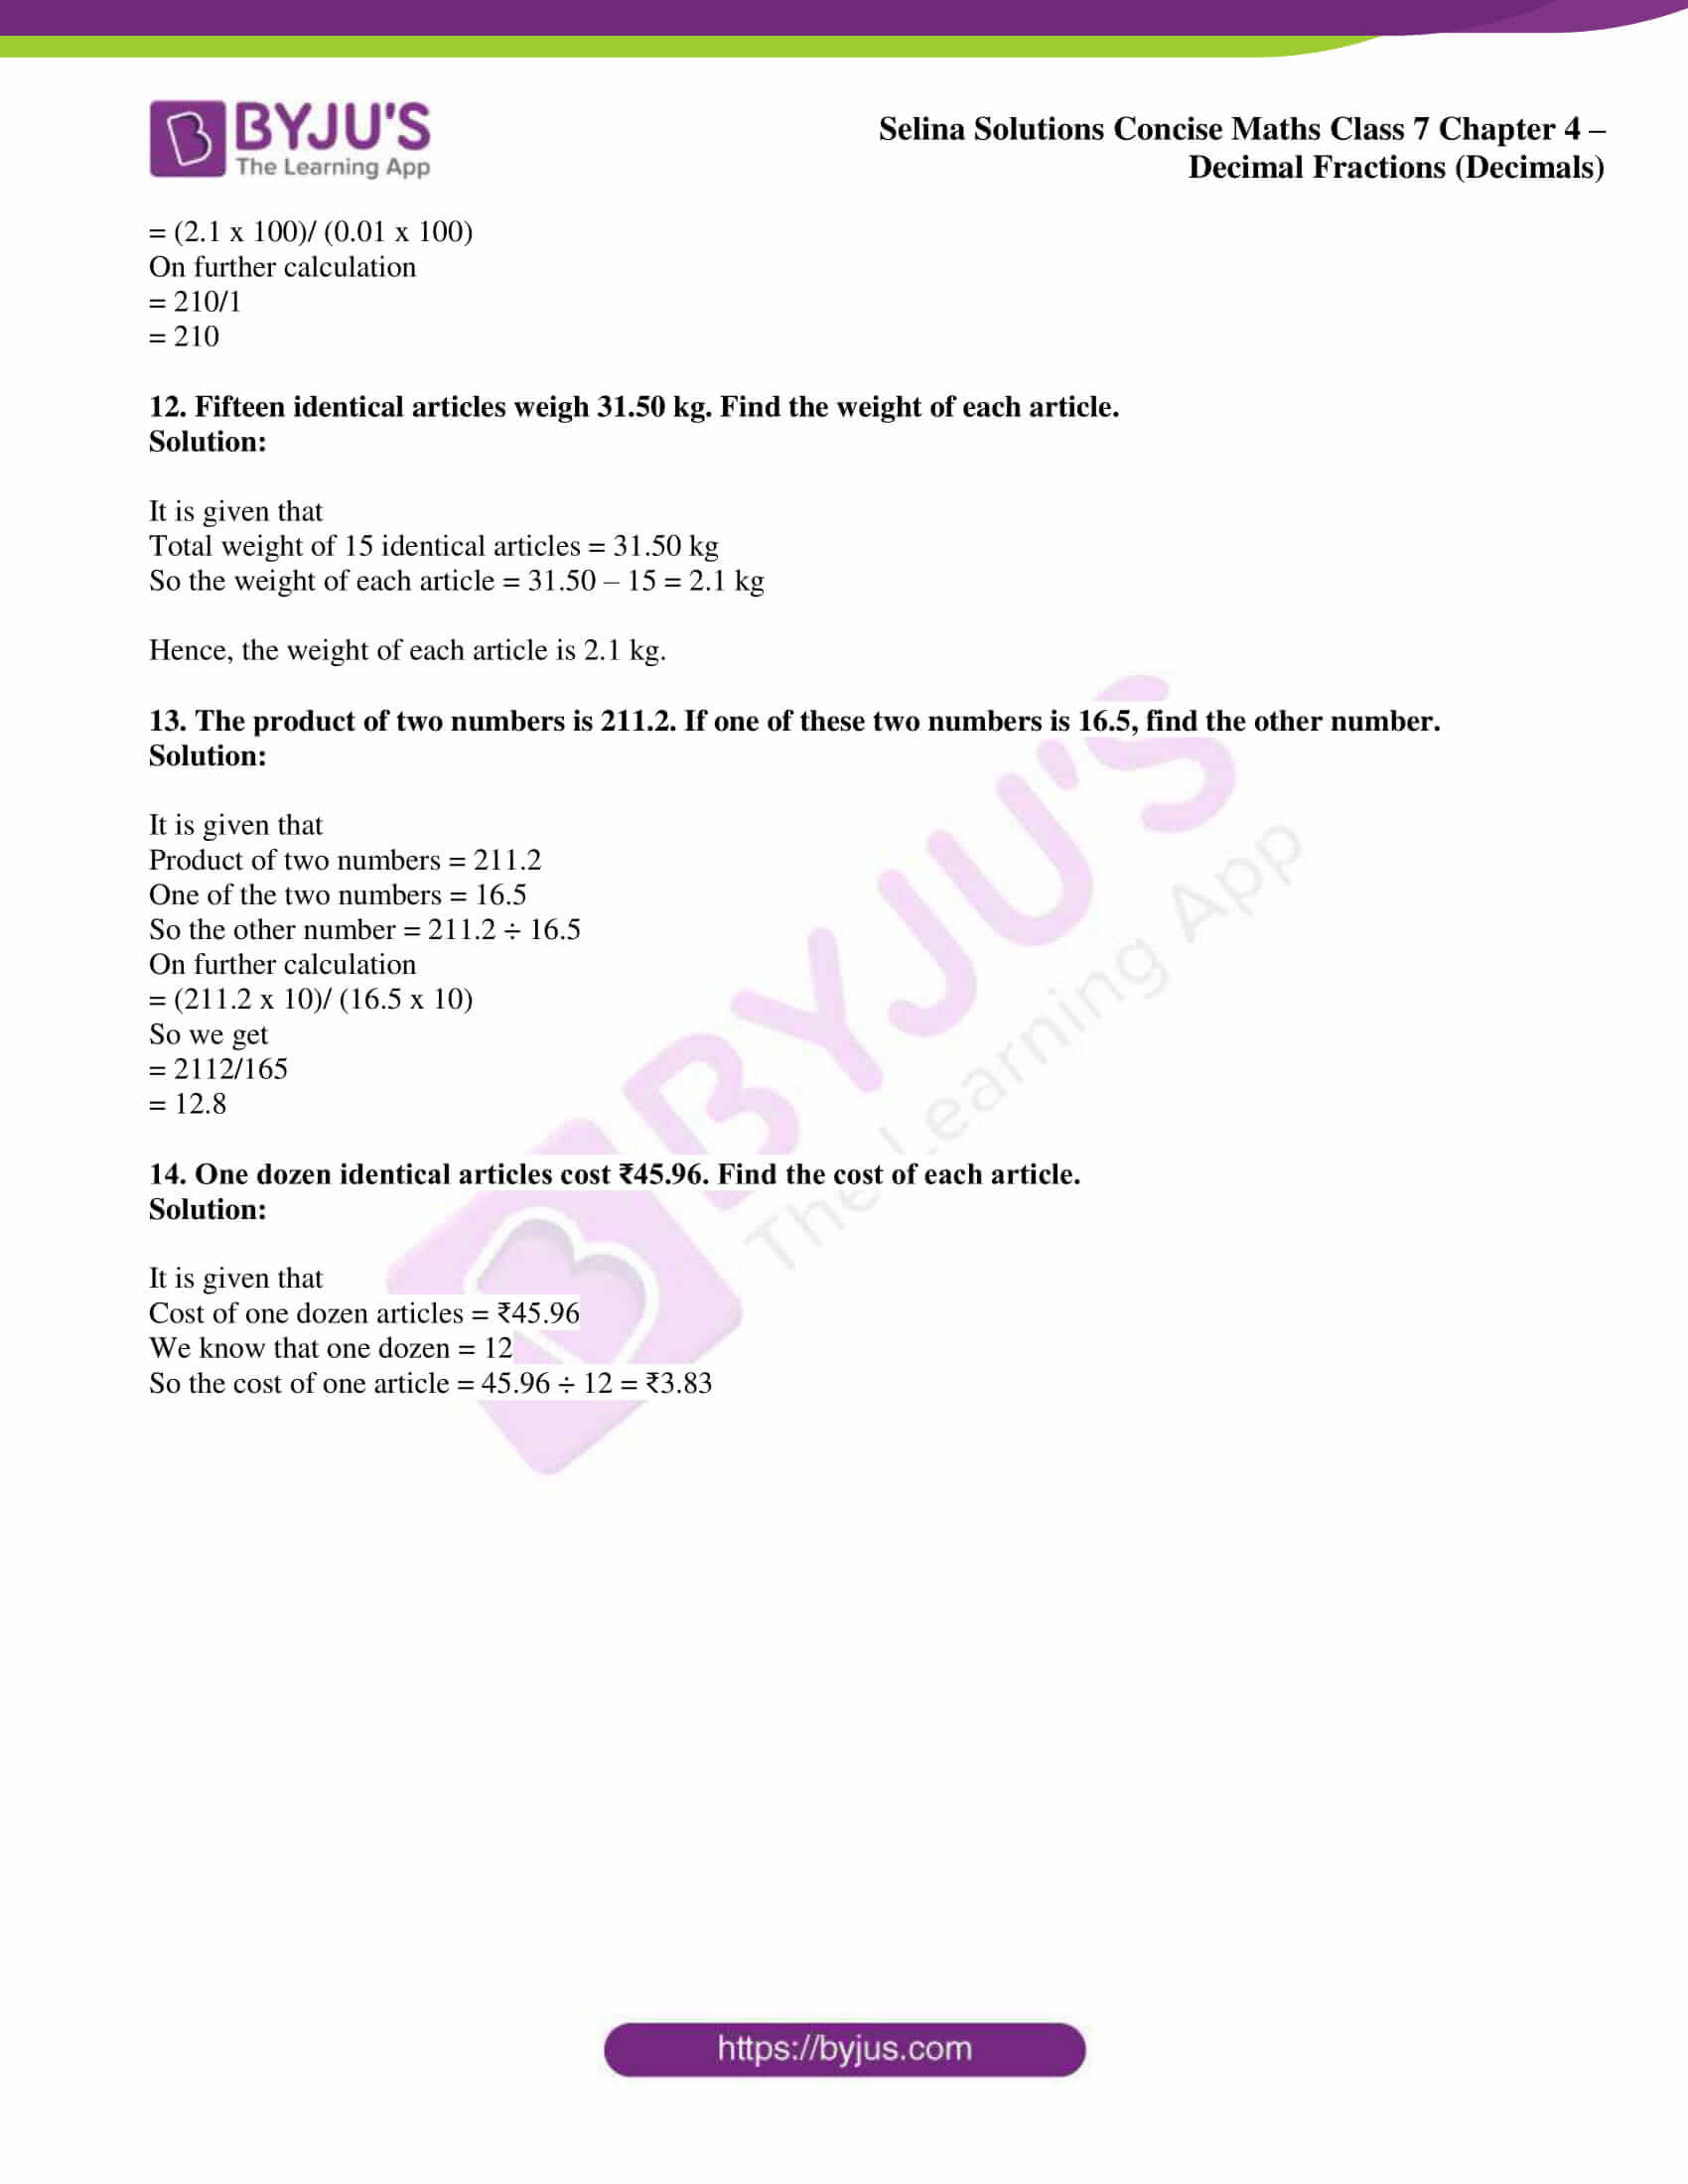 selina sol concise maths class 7 ch4 ex 4c 16